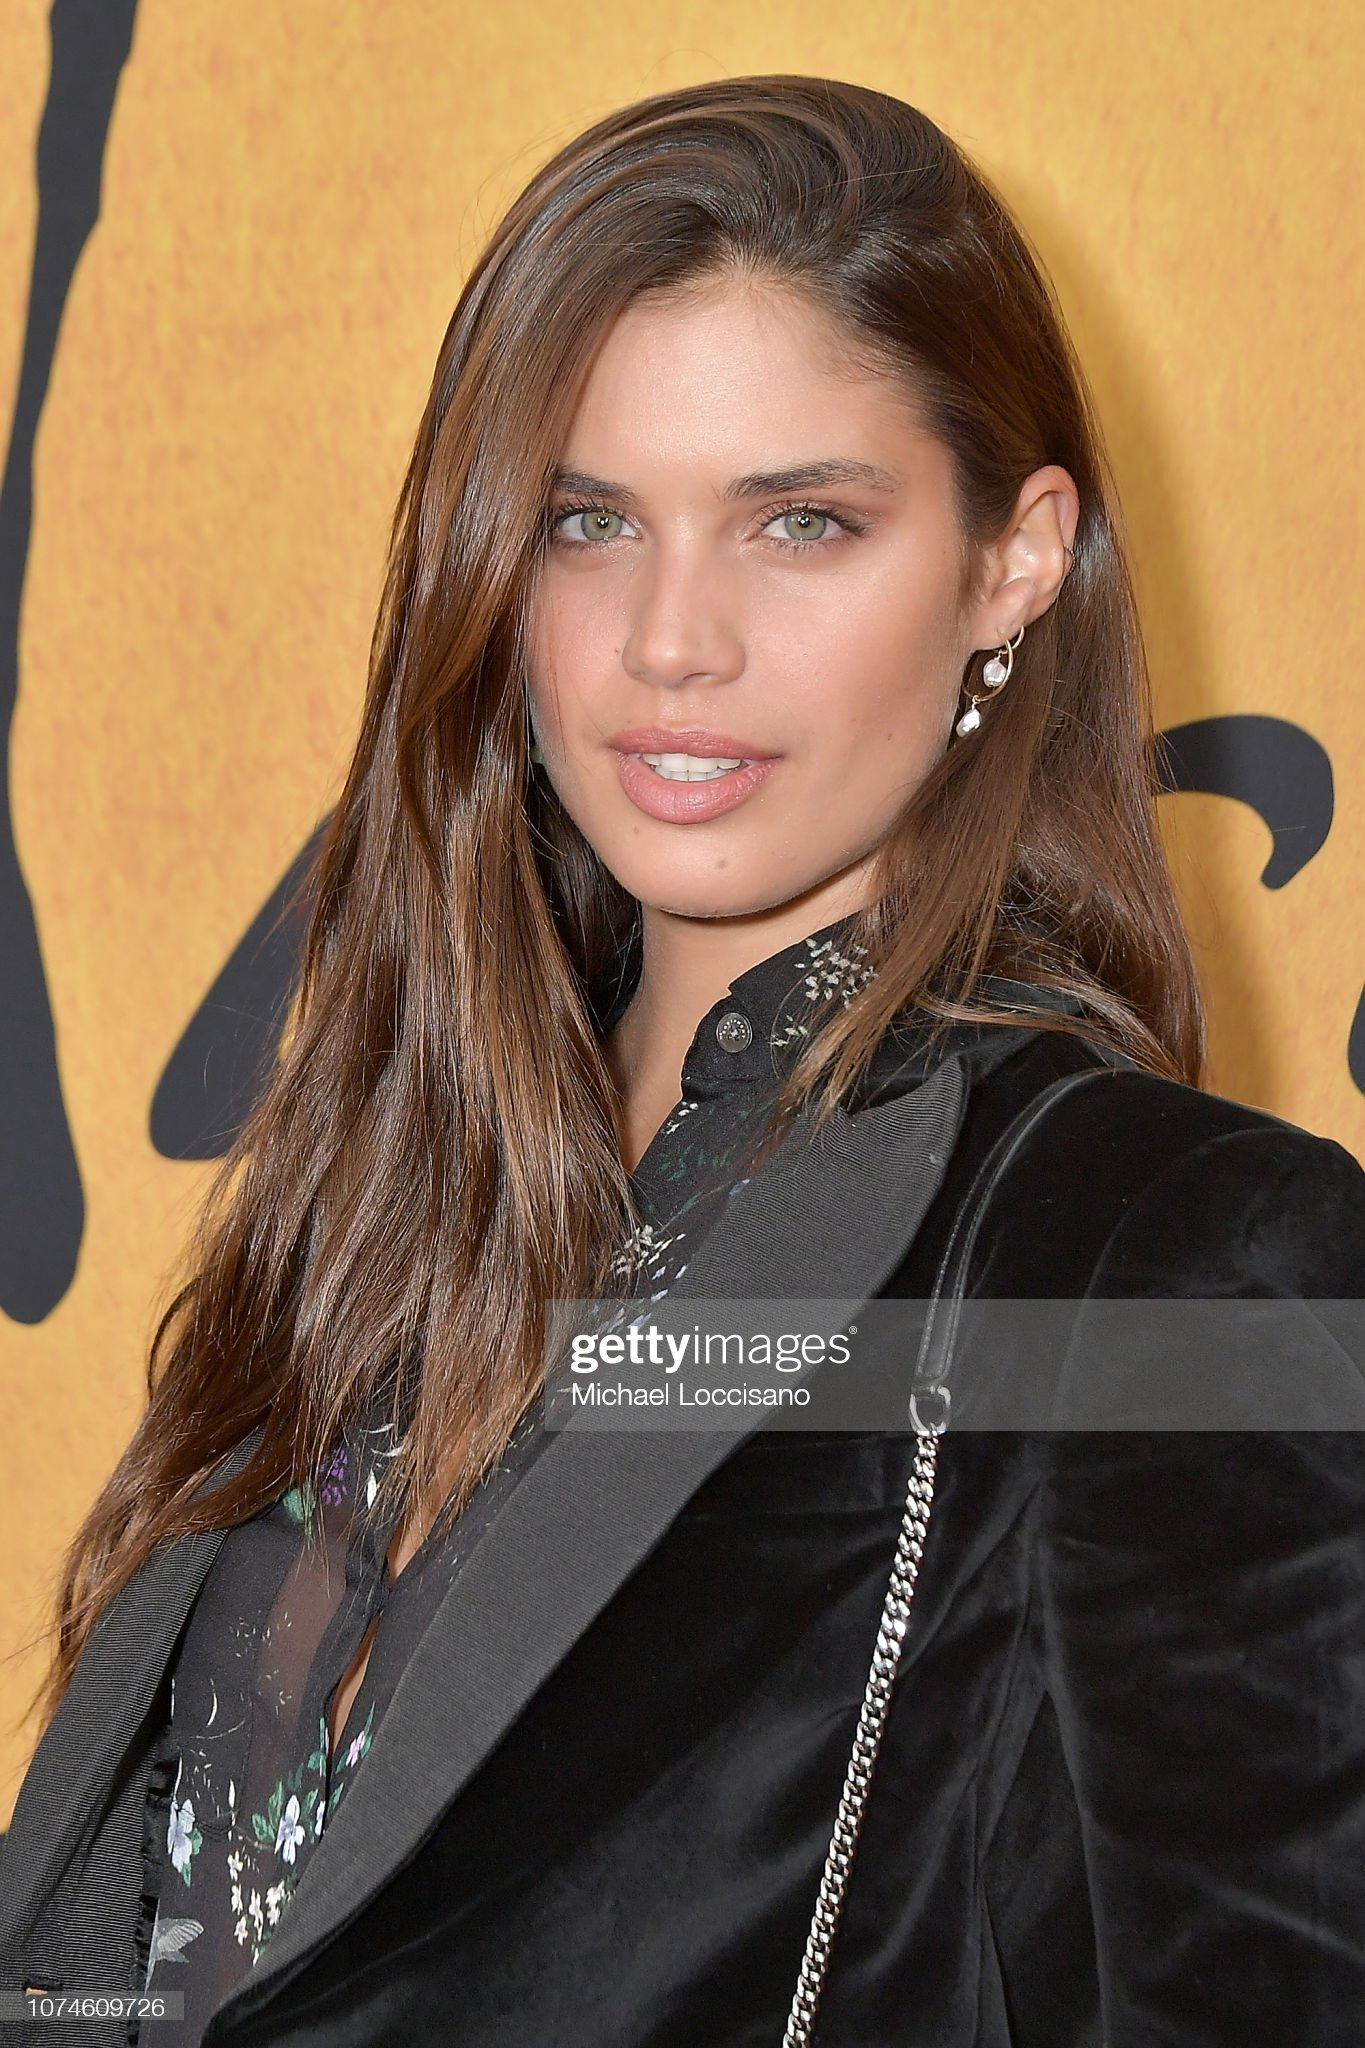 Sara Sampaio (galería de fotos) - pictures Model-sara-sampaio-attends-the-new-york-premiere-of-mary-queen-of-at-picture-id1074609726?s=2048x2048